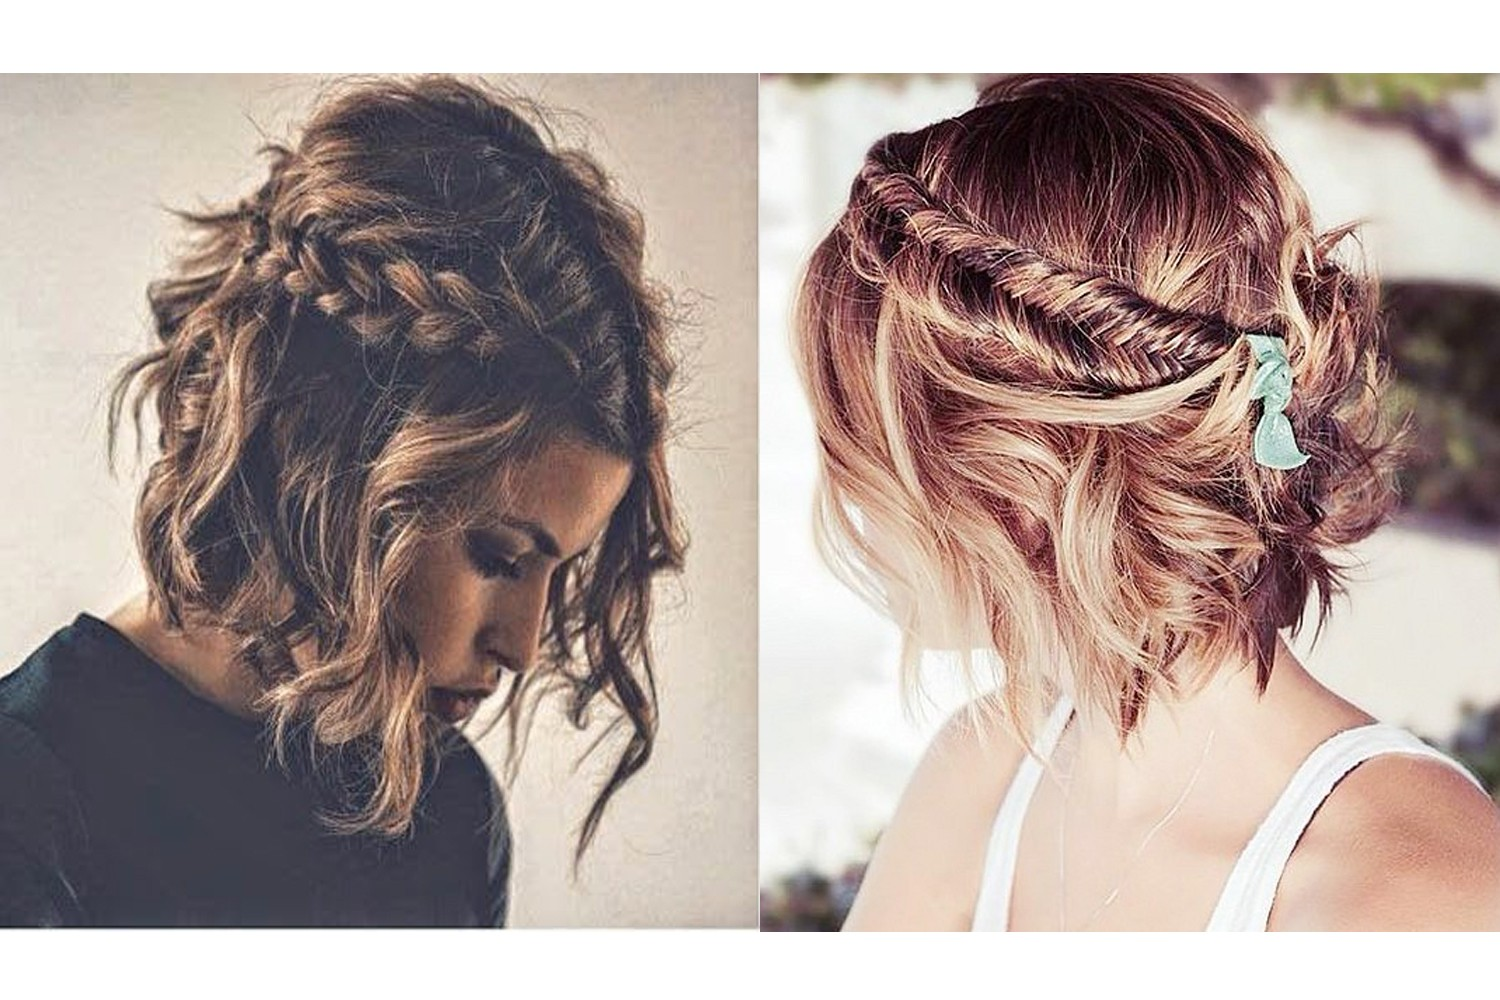 Coiffure Mariage Simple Cheveux Courts Coiffure Cheveux Courts Facile Et Rapide Coiffure Simple